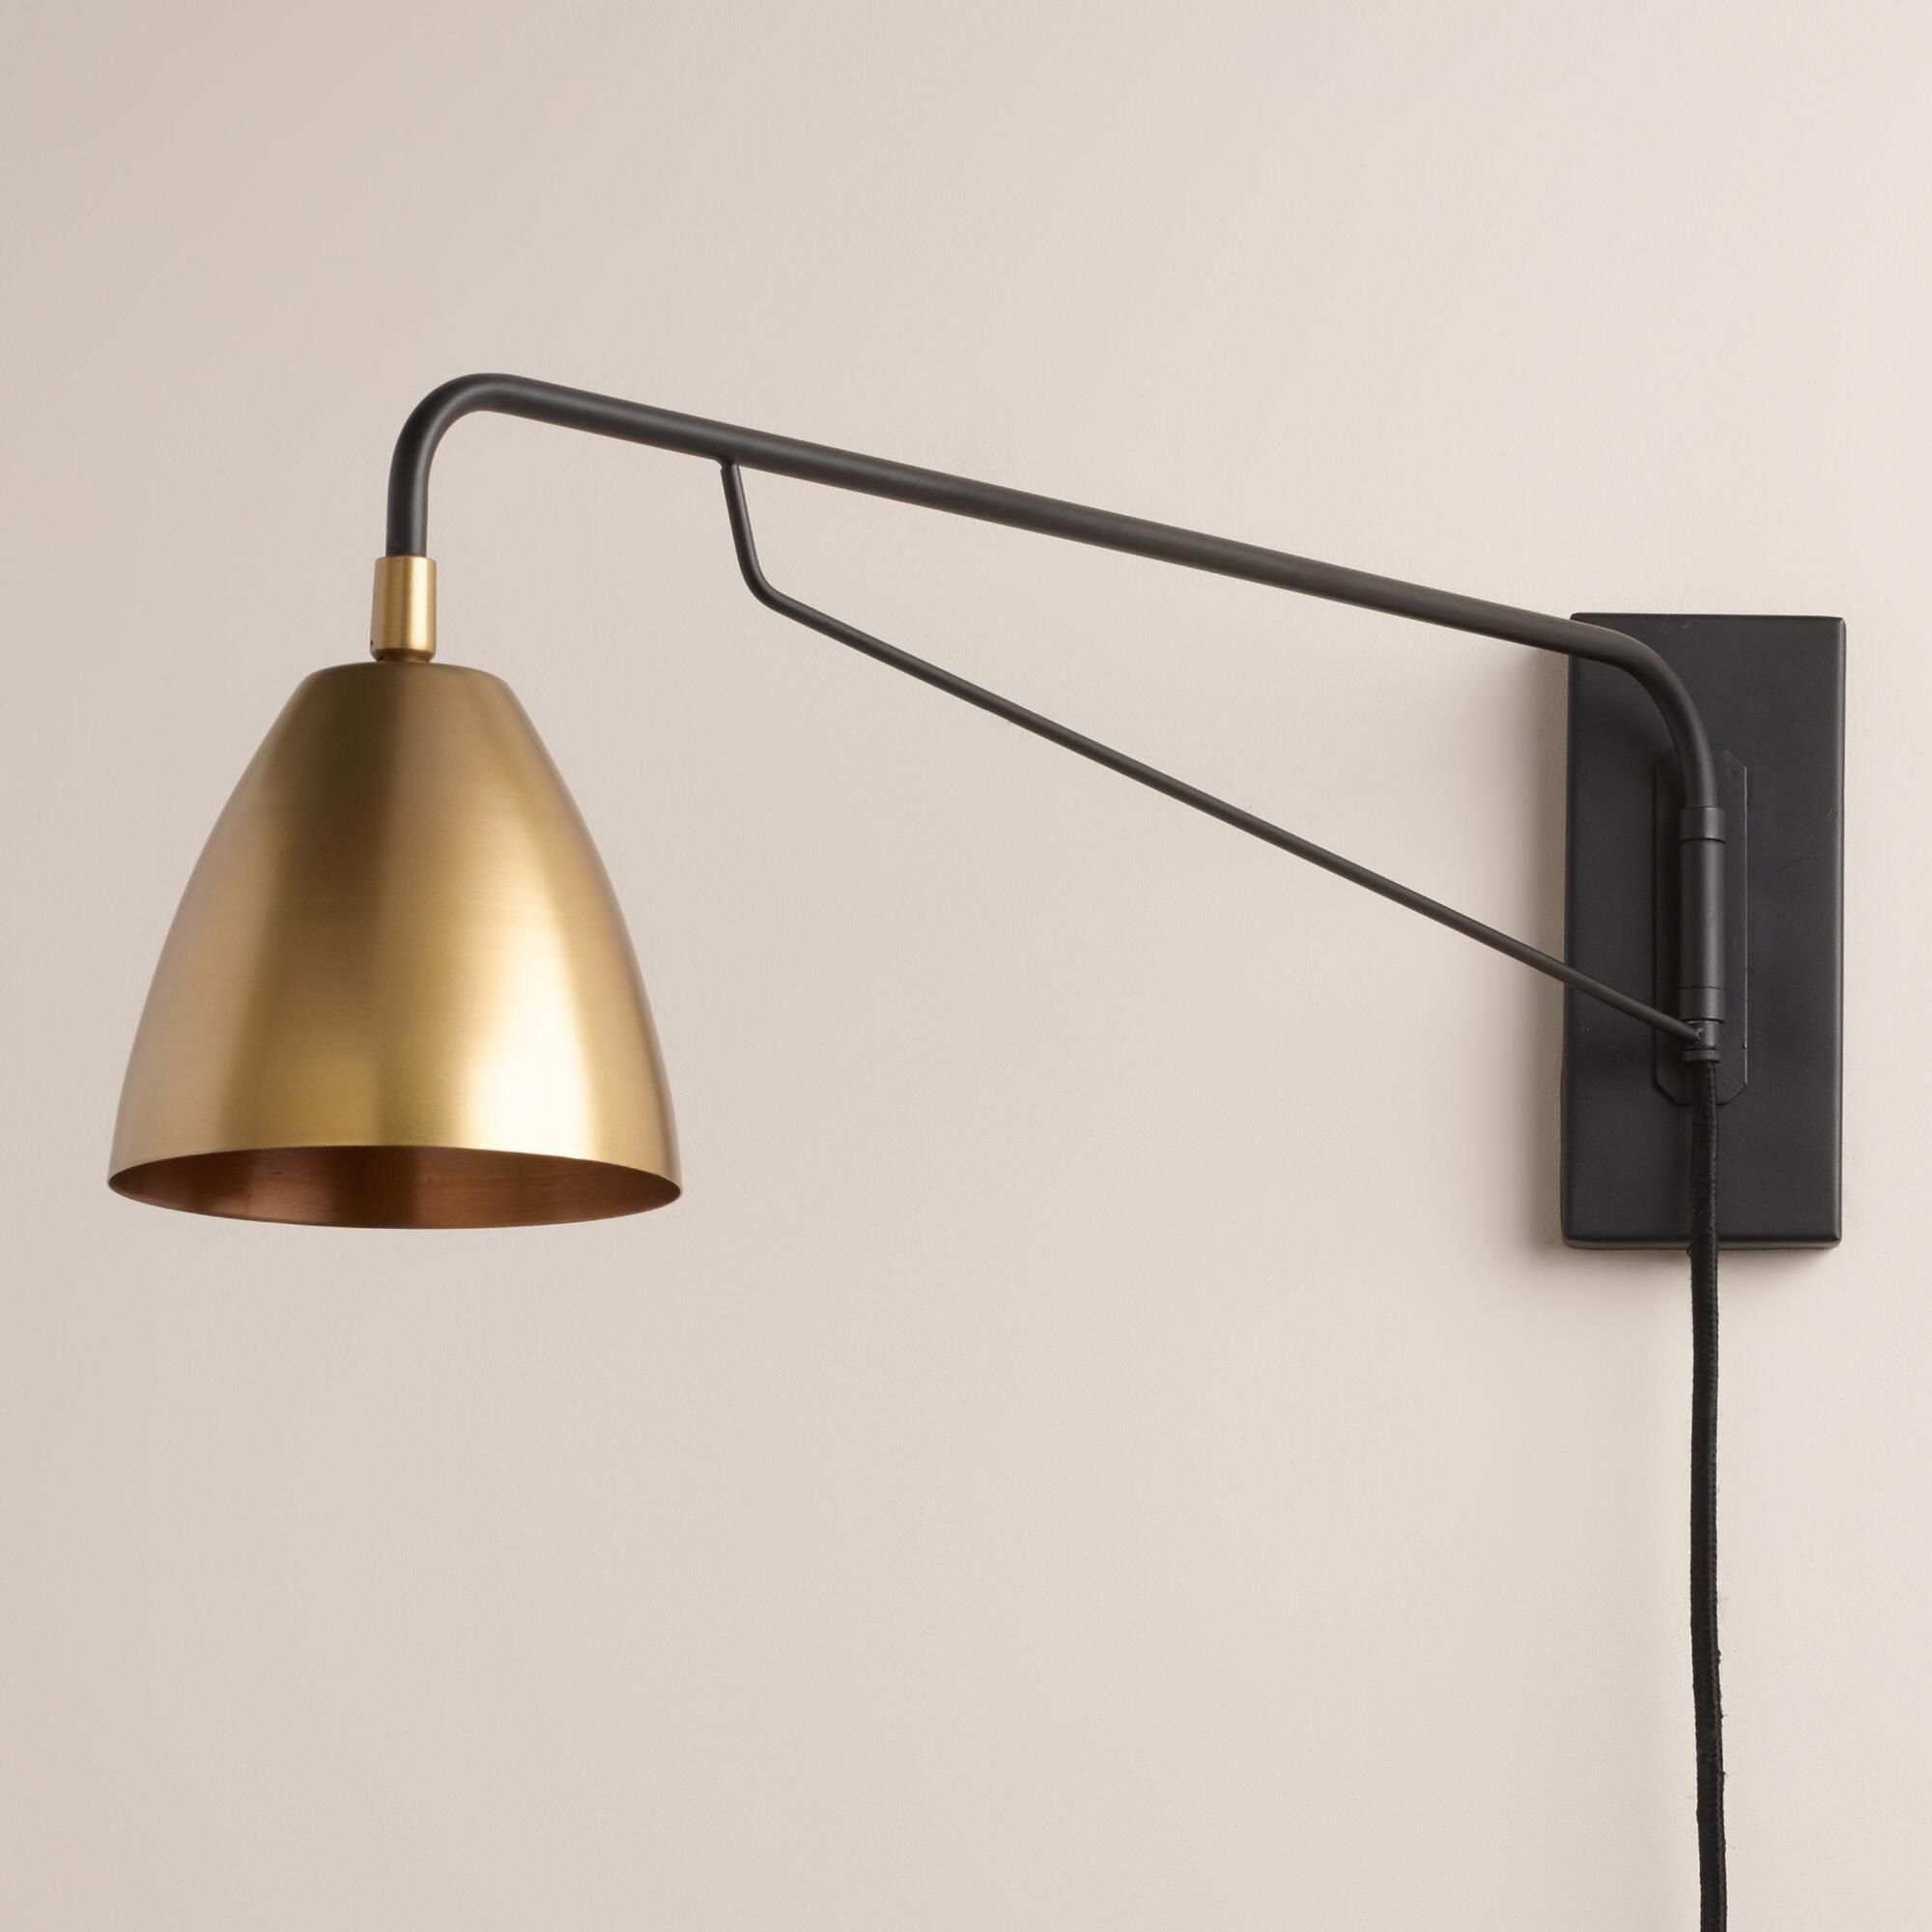 Modern Style Wall Sconces : Brass Nook Pivoting Wall Sconce Mid century modern design, Lighting solutions and Antique brass